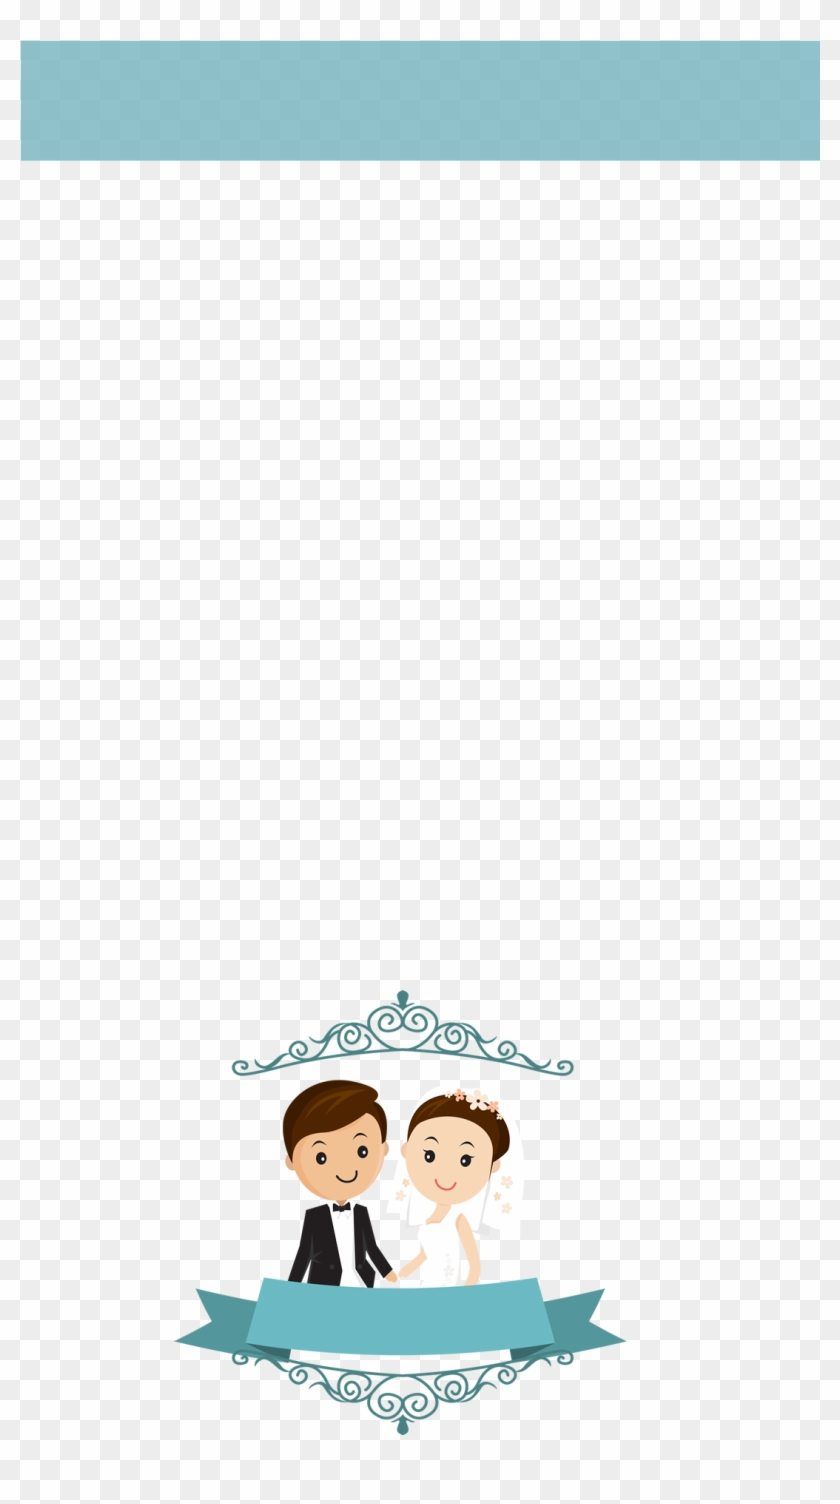 Holding Hands - Wedding Couple Cartoon Png Clipart #117978